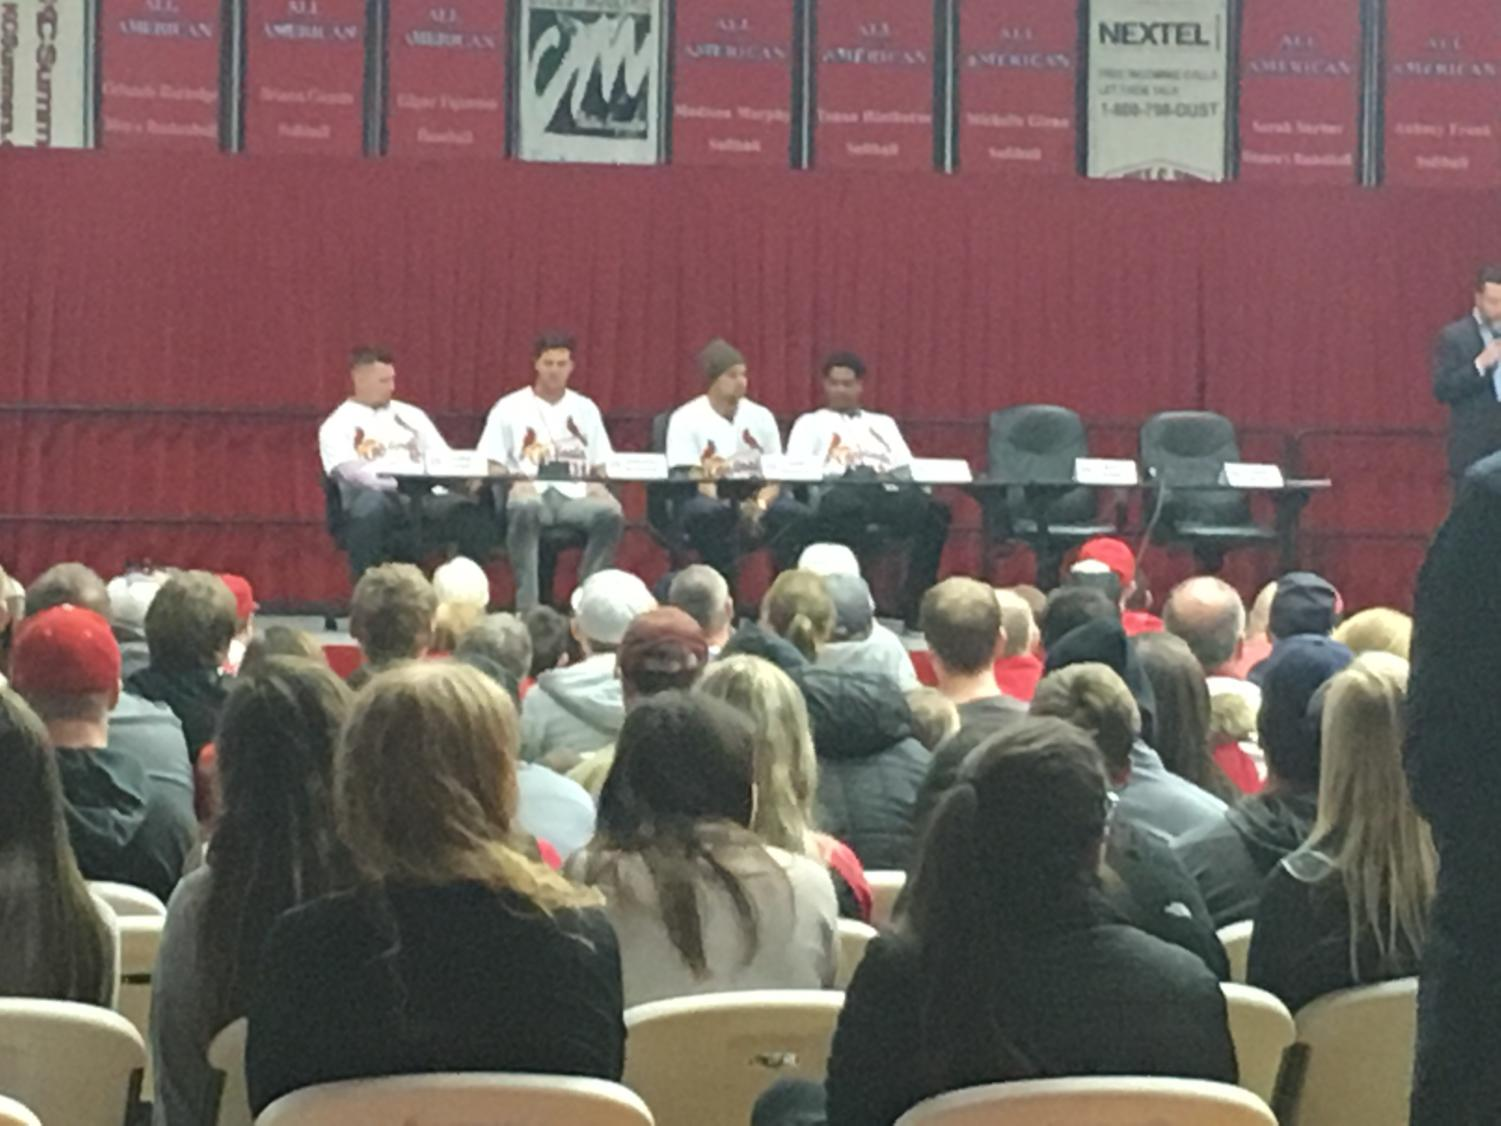 Cardinals players respond to fans' questions in a panel at Lake Land on Jan. 13.